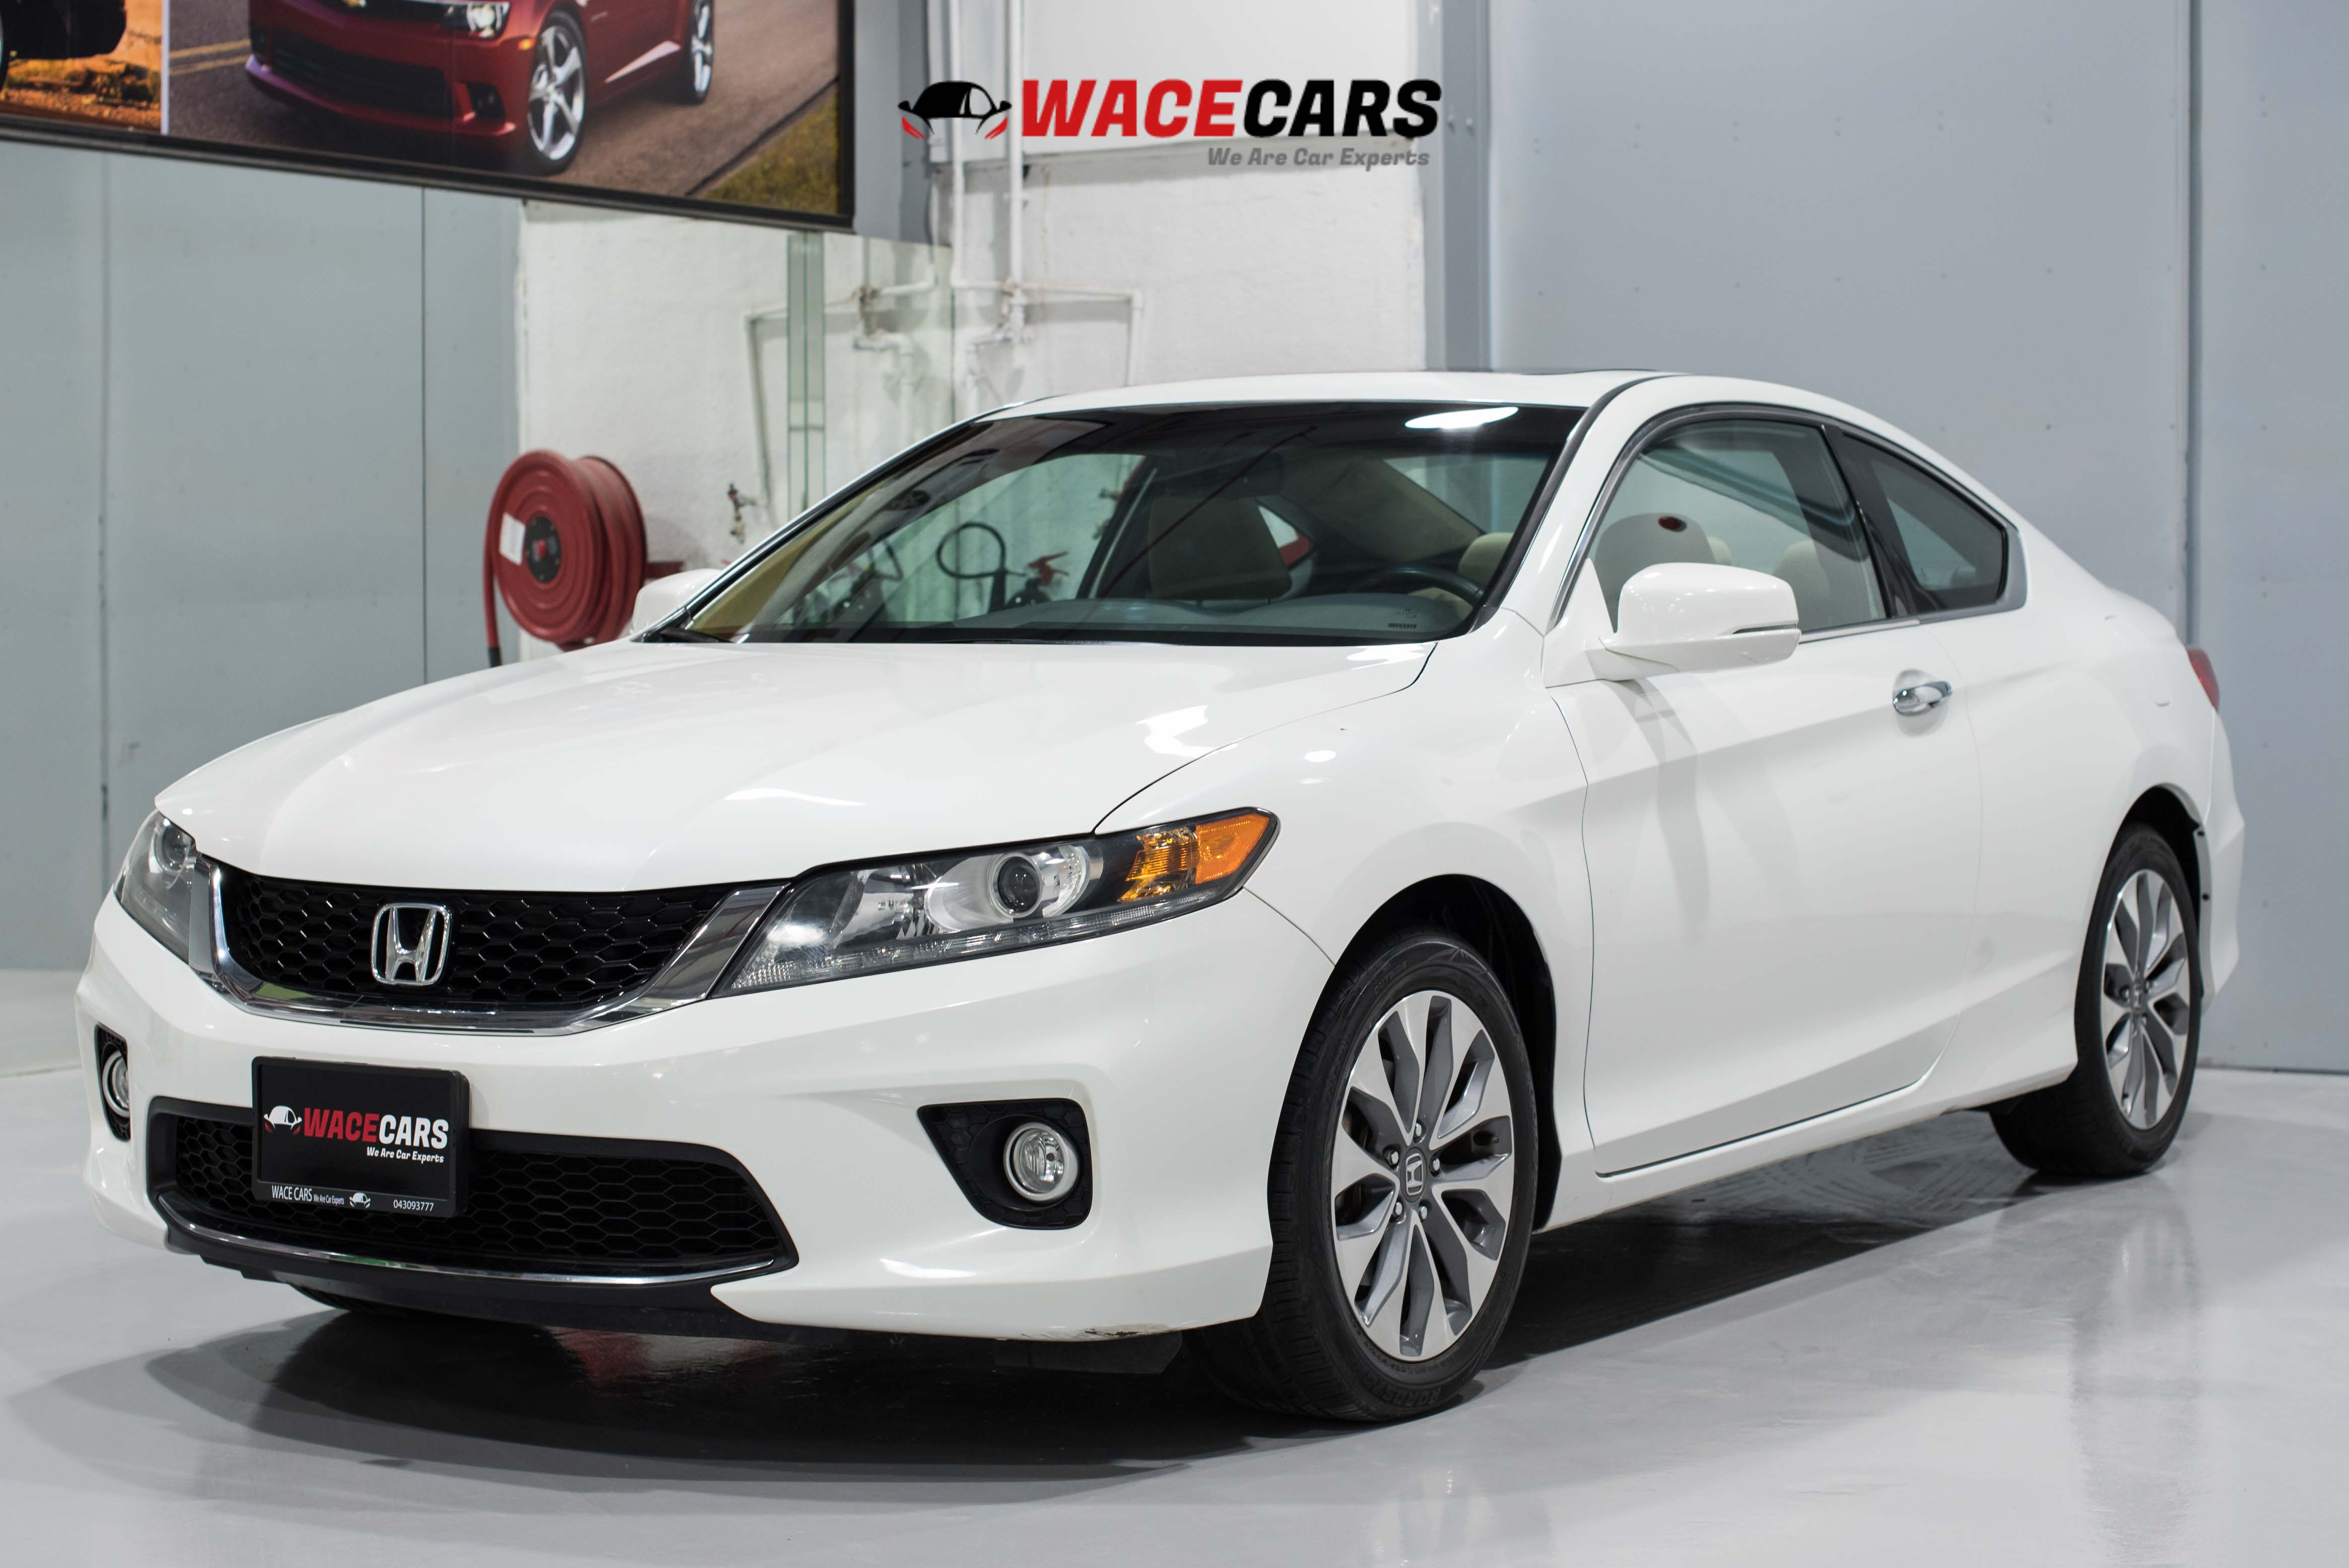 Used Honda Accord 2014 for sale in Dubai